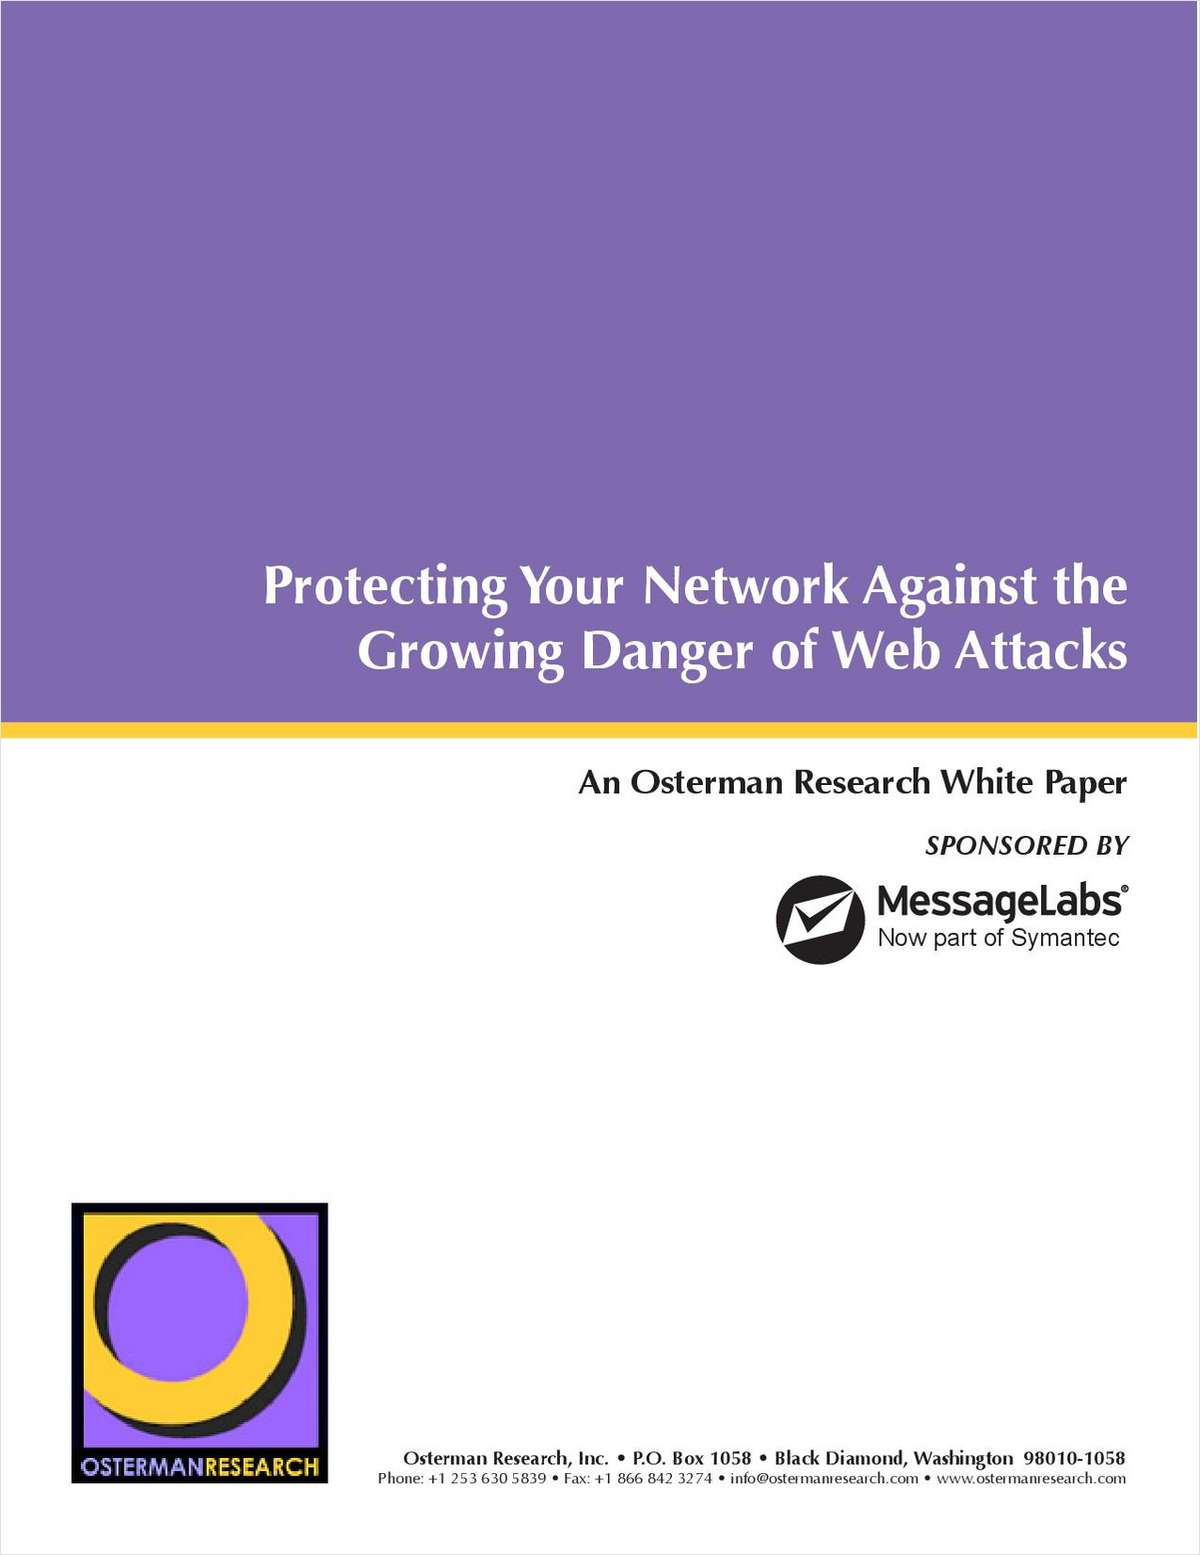 Protecting Your Network Against the Growing Danger of Web Attacks